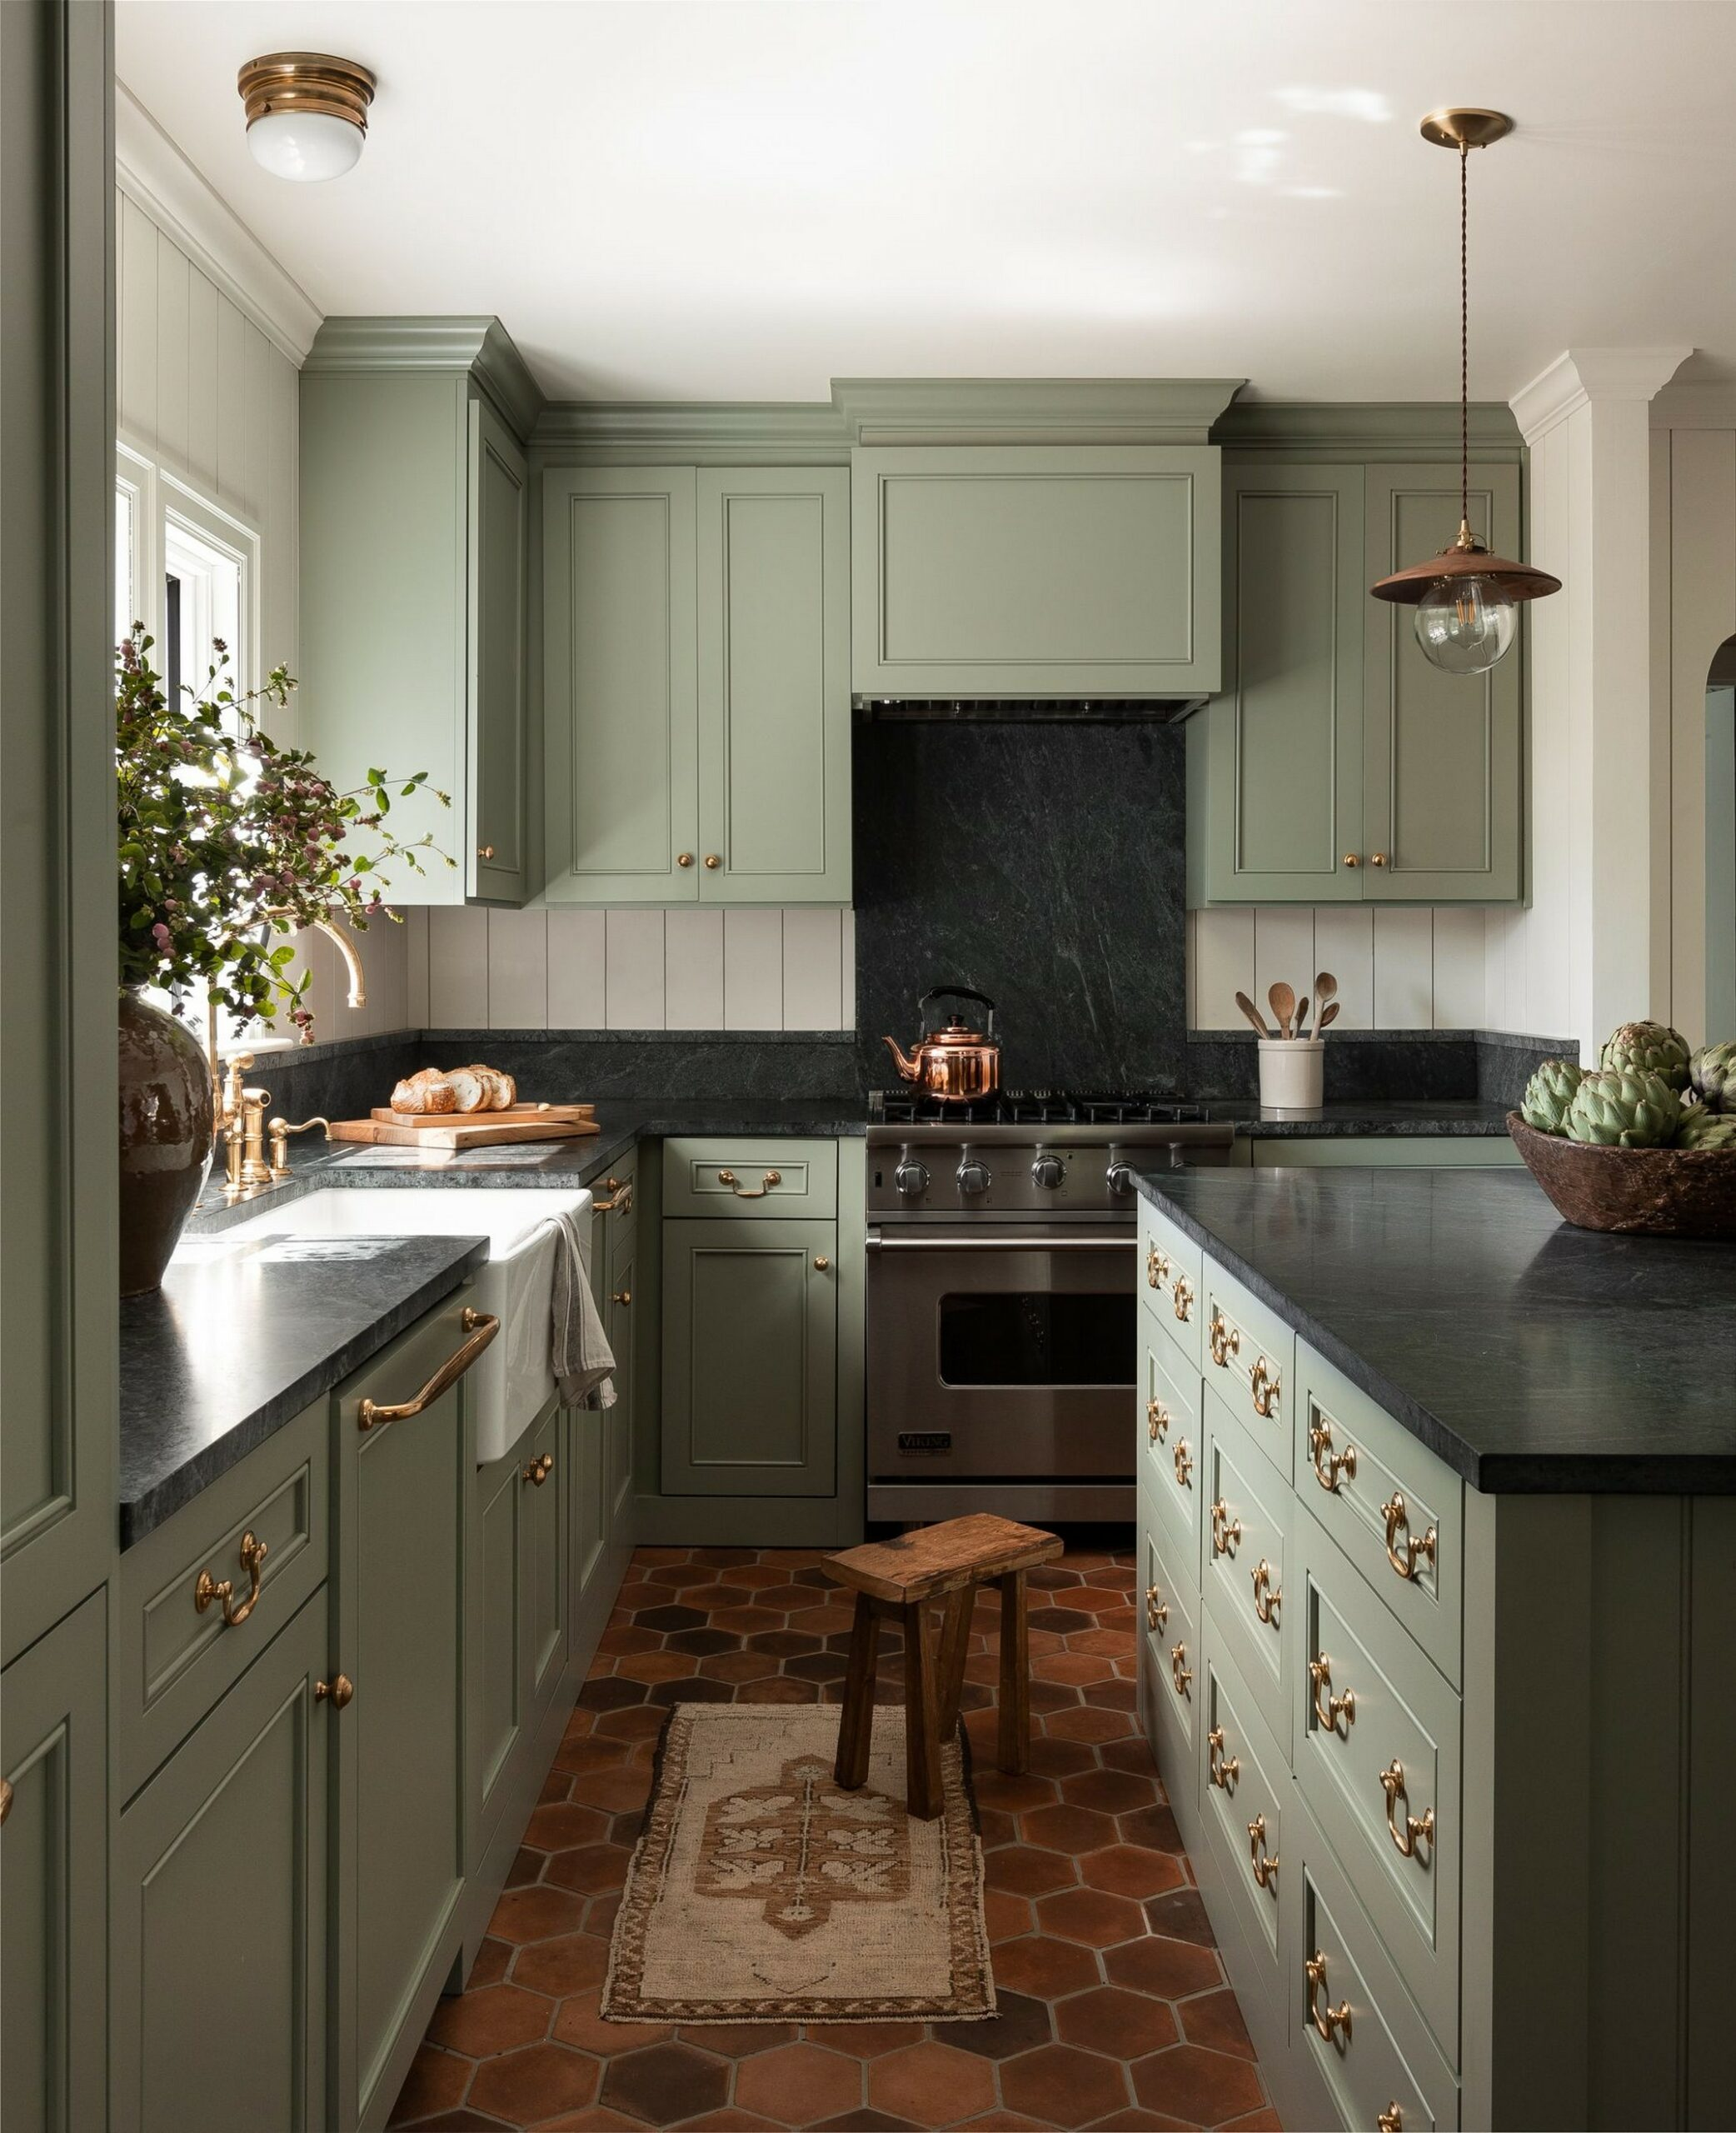 71 Painted Kitchen Cabinets Ideas For Home Decor 13